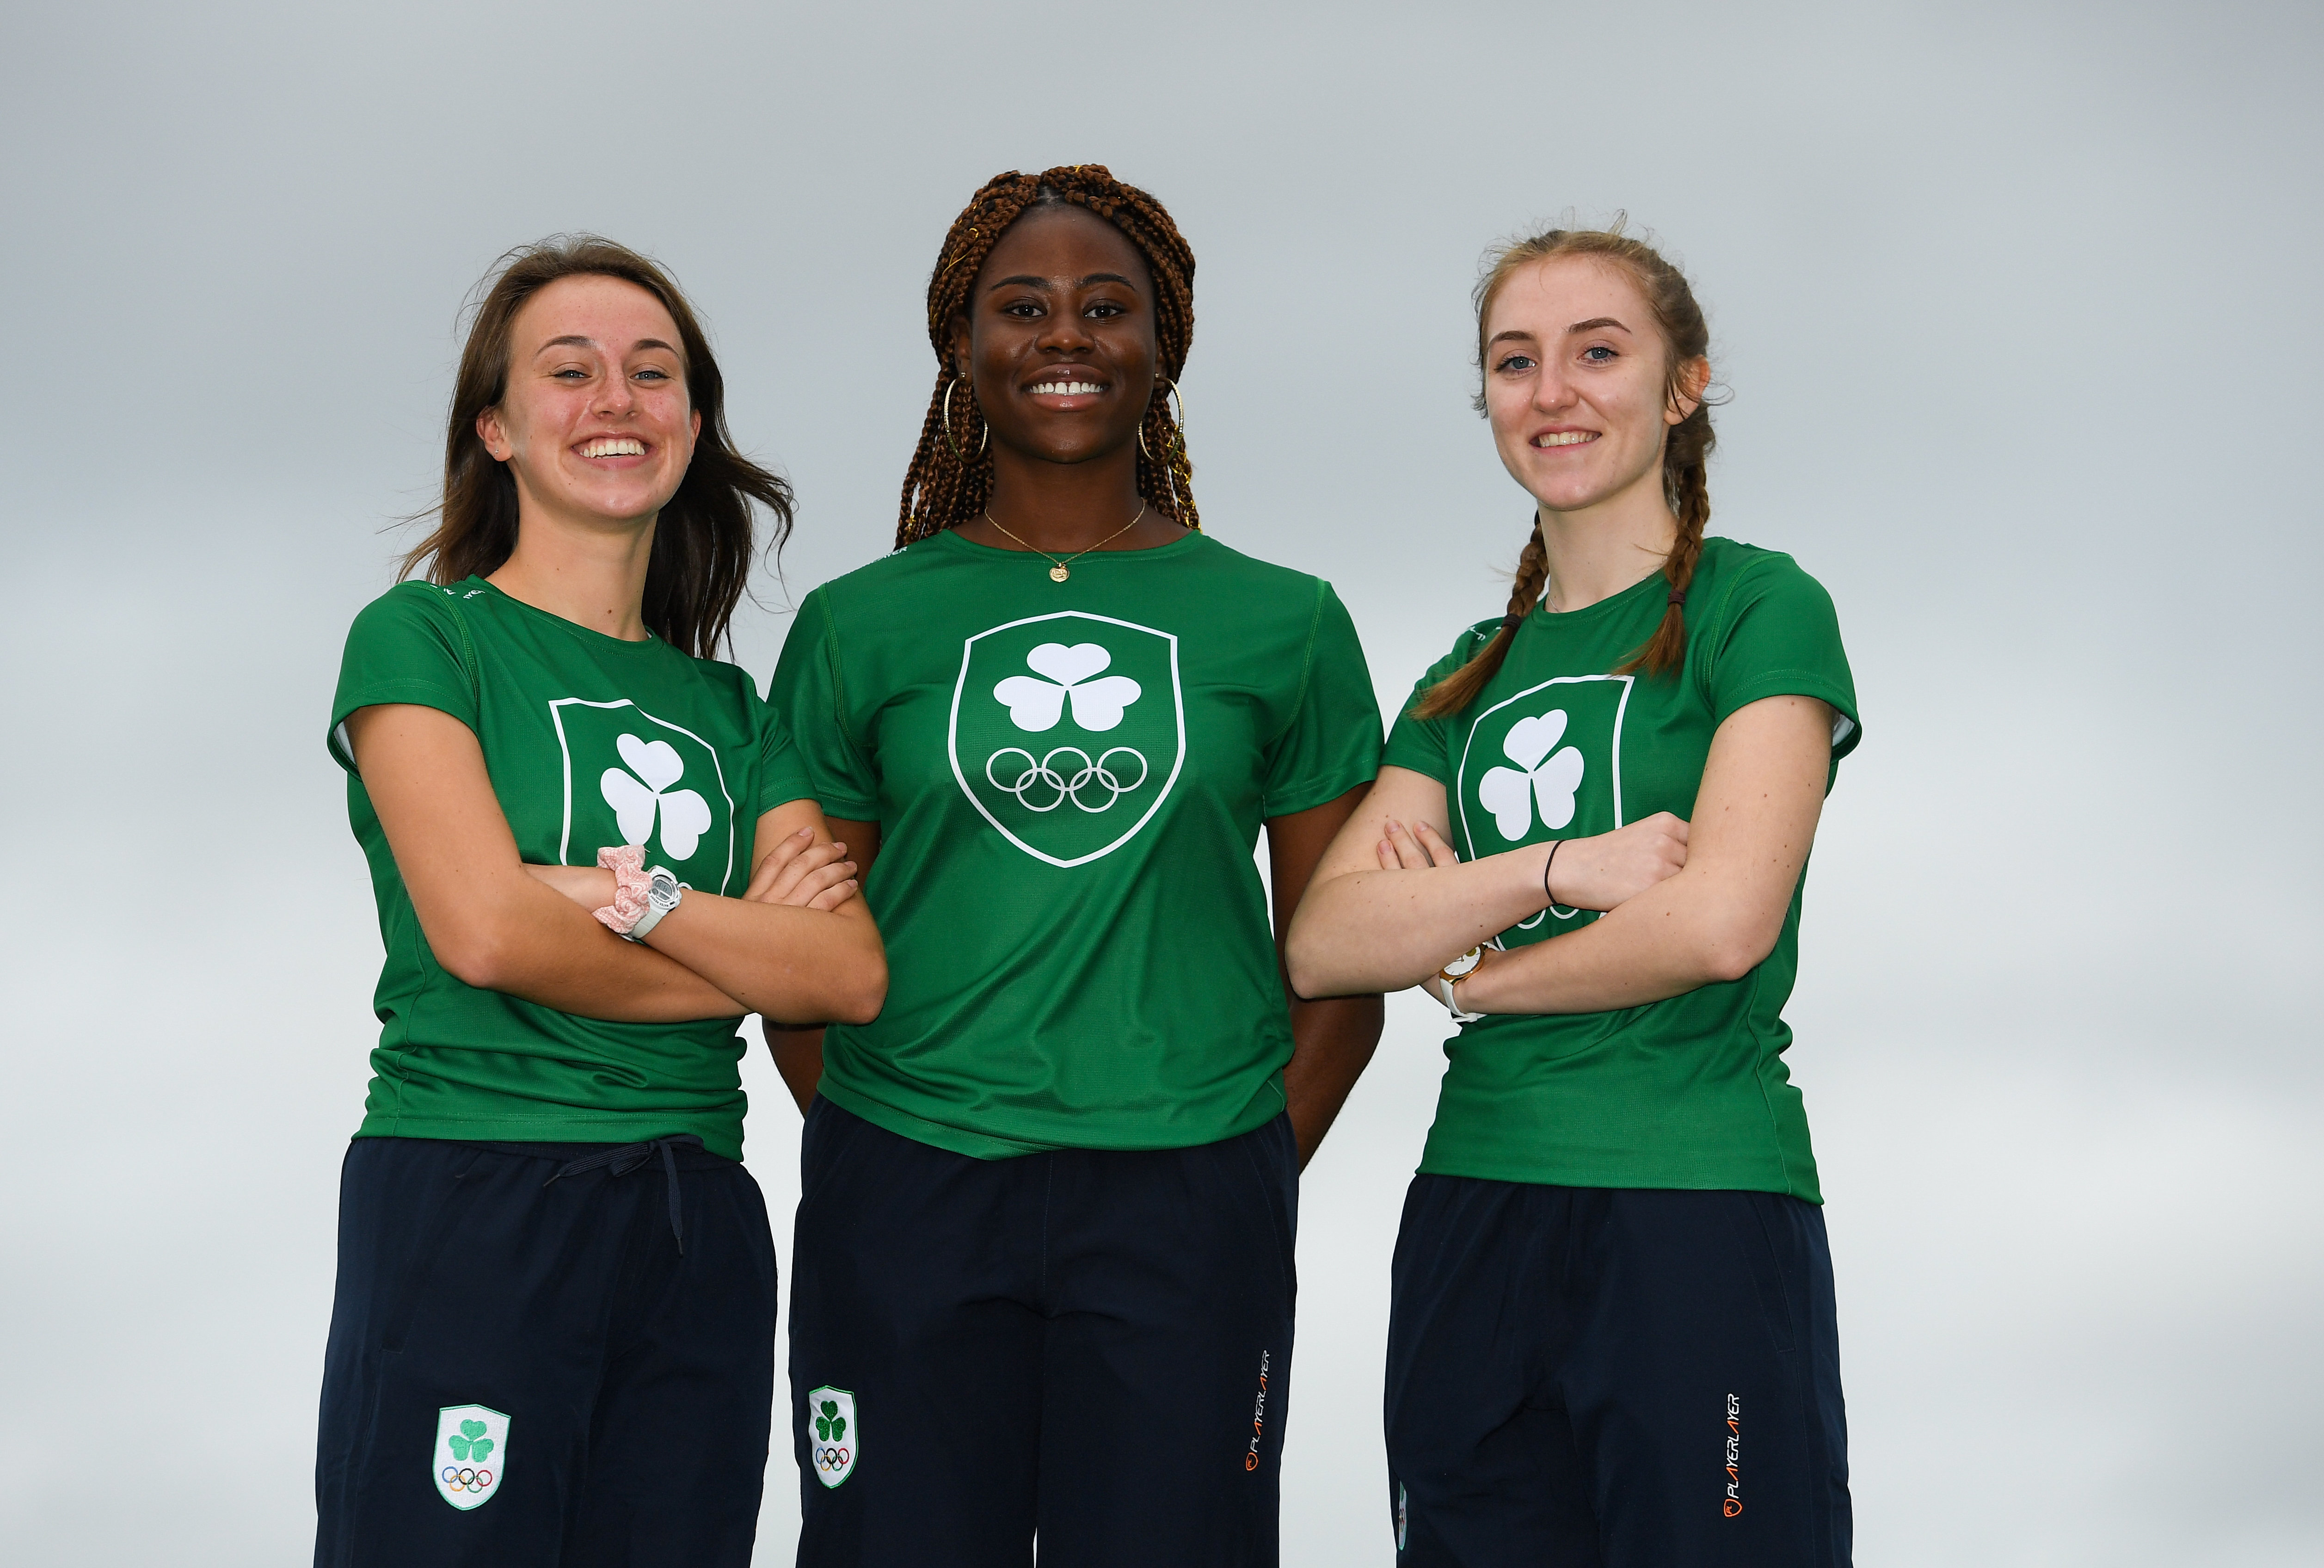 Sophie, Miriam & Miranda depart for the Youth Olympic Games in Buenos Aires